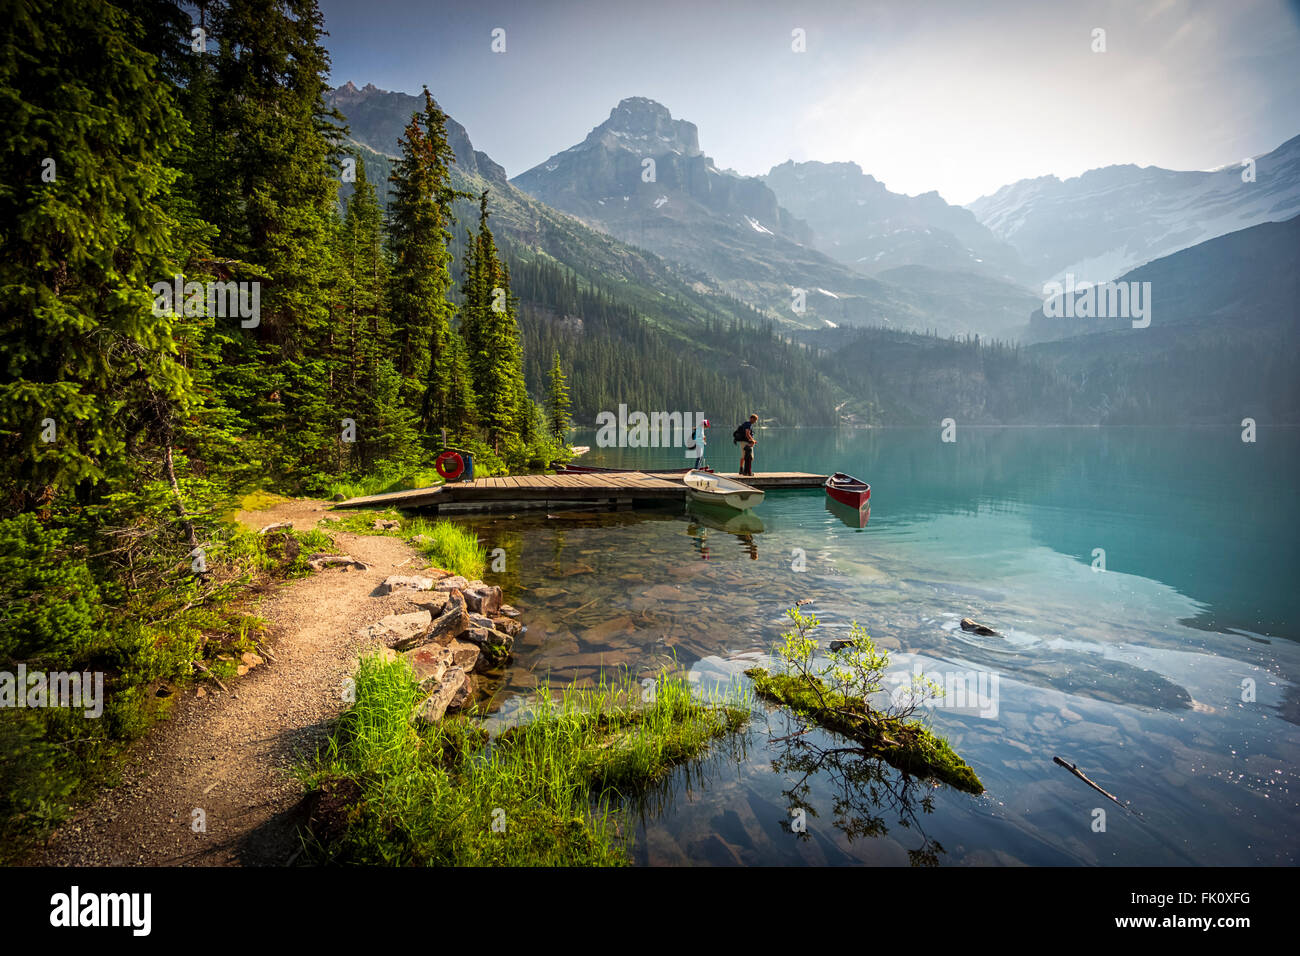 Father and two children on the shores of Lake O'Hara in Yoho National Park, Canadian Rockies - Stock Image